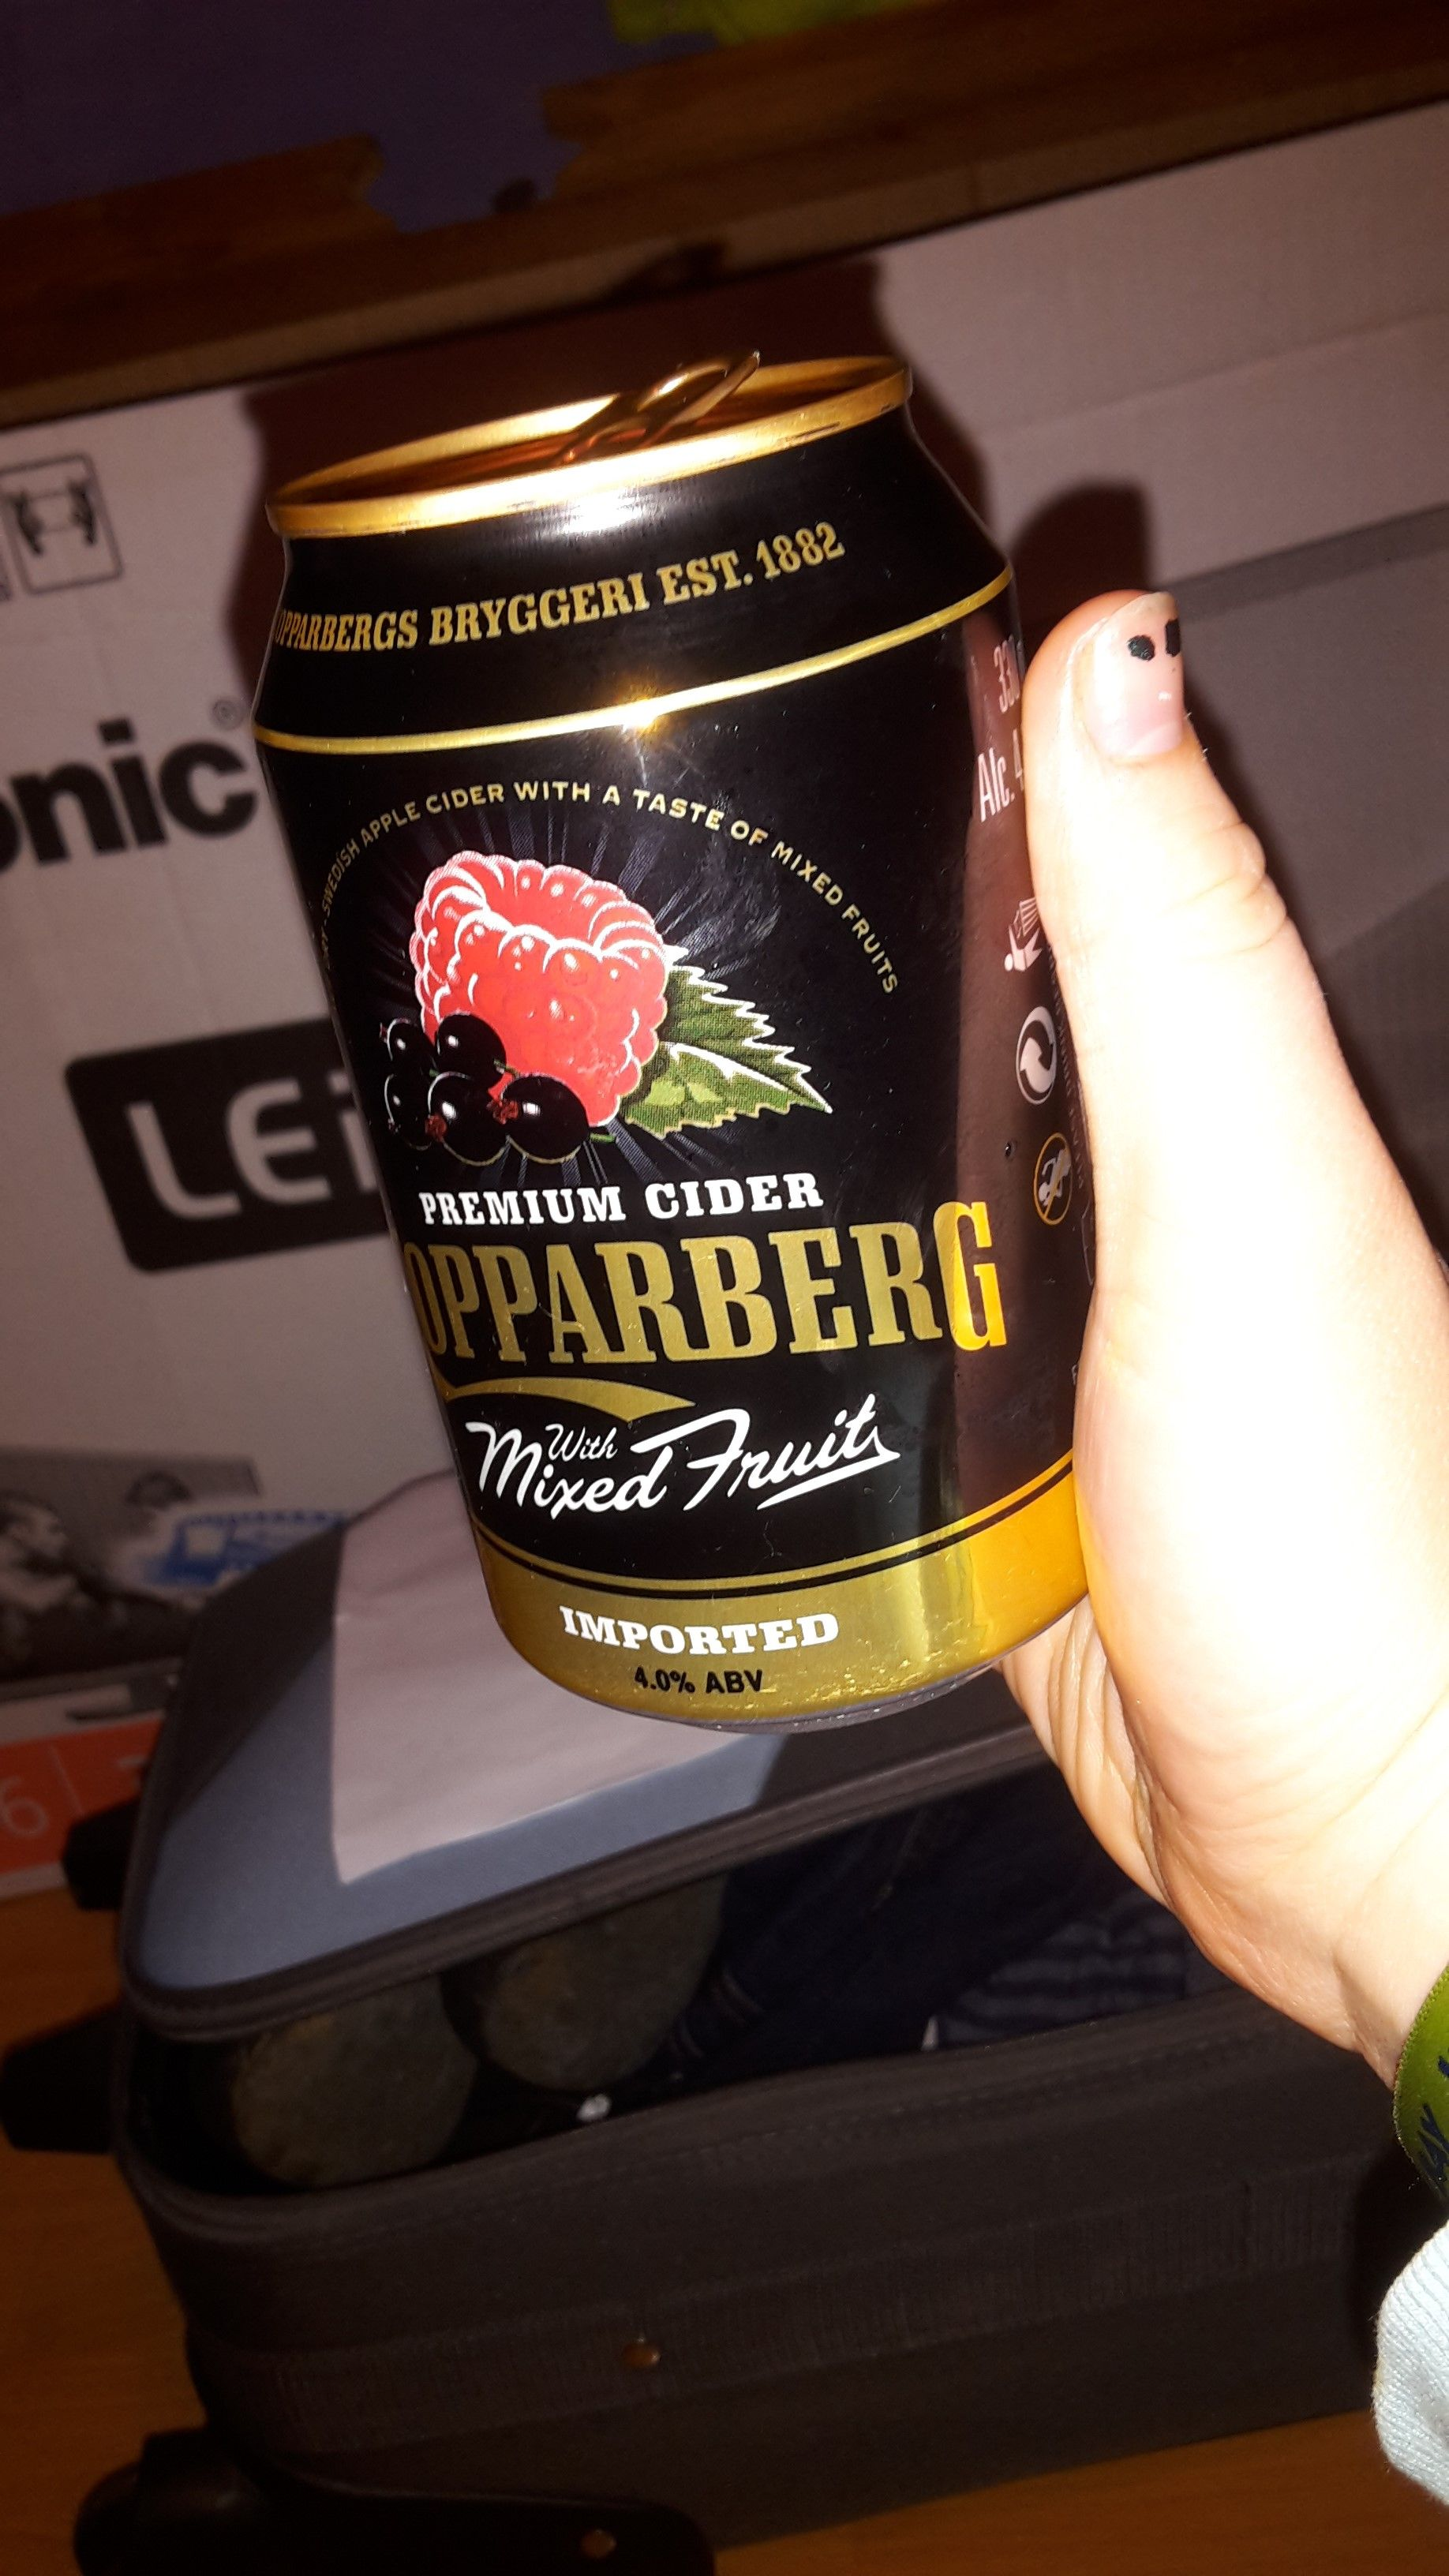 Picture 104 - (17th November 2014) Ahhh Monday! Still tired from the weekend. Got home and decided to indulge in a Kopparberg Mixed Fruits.